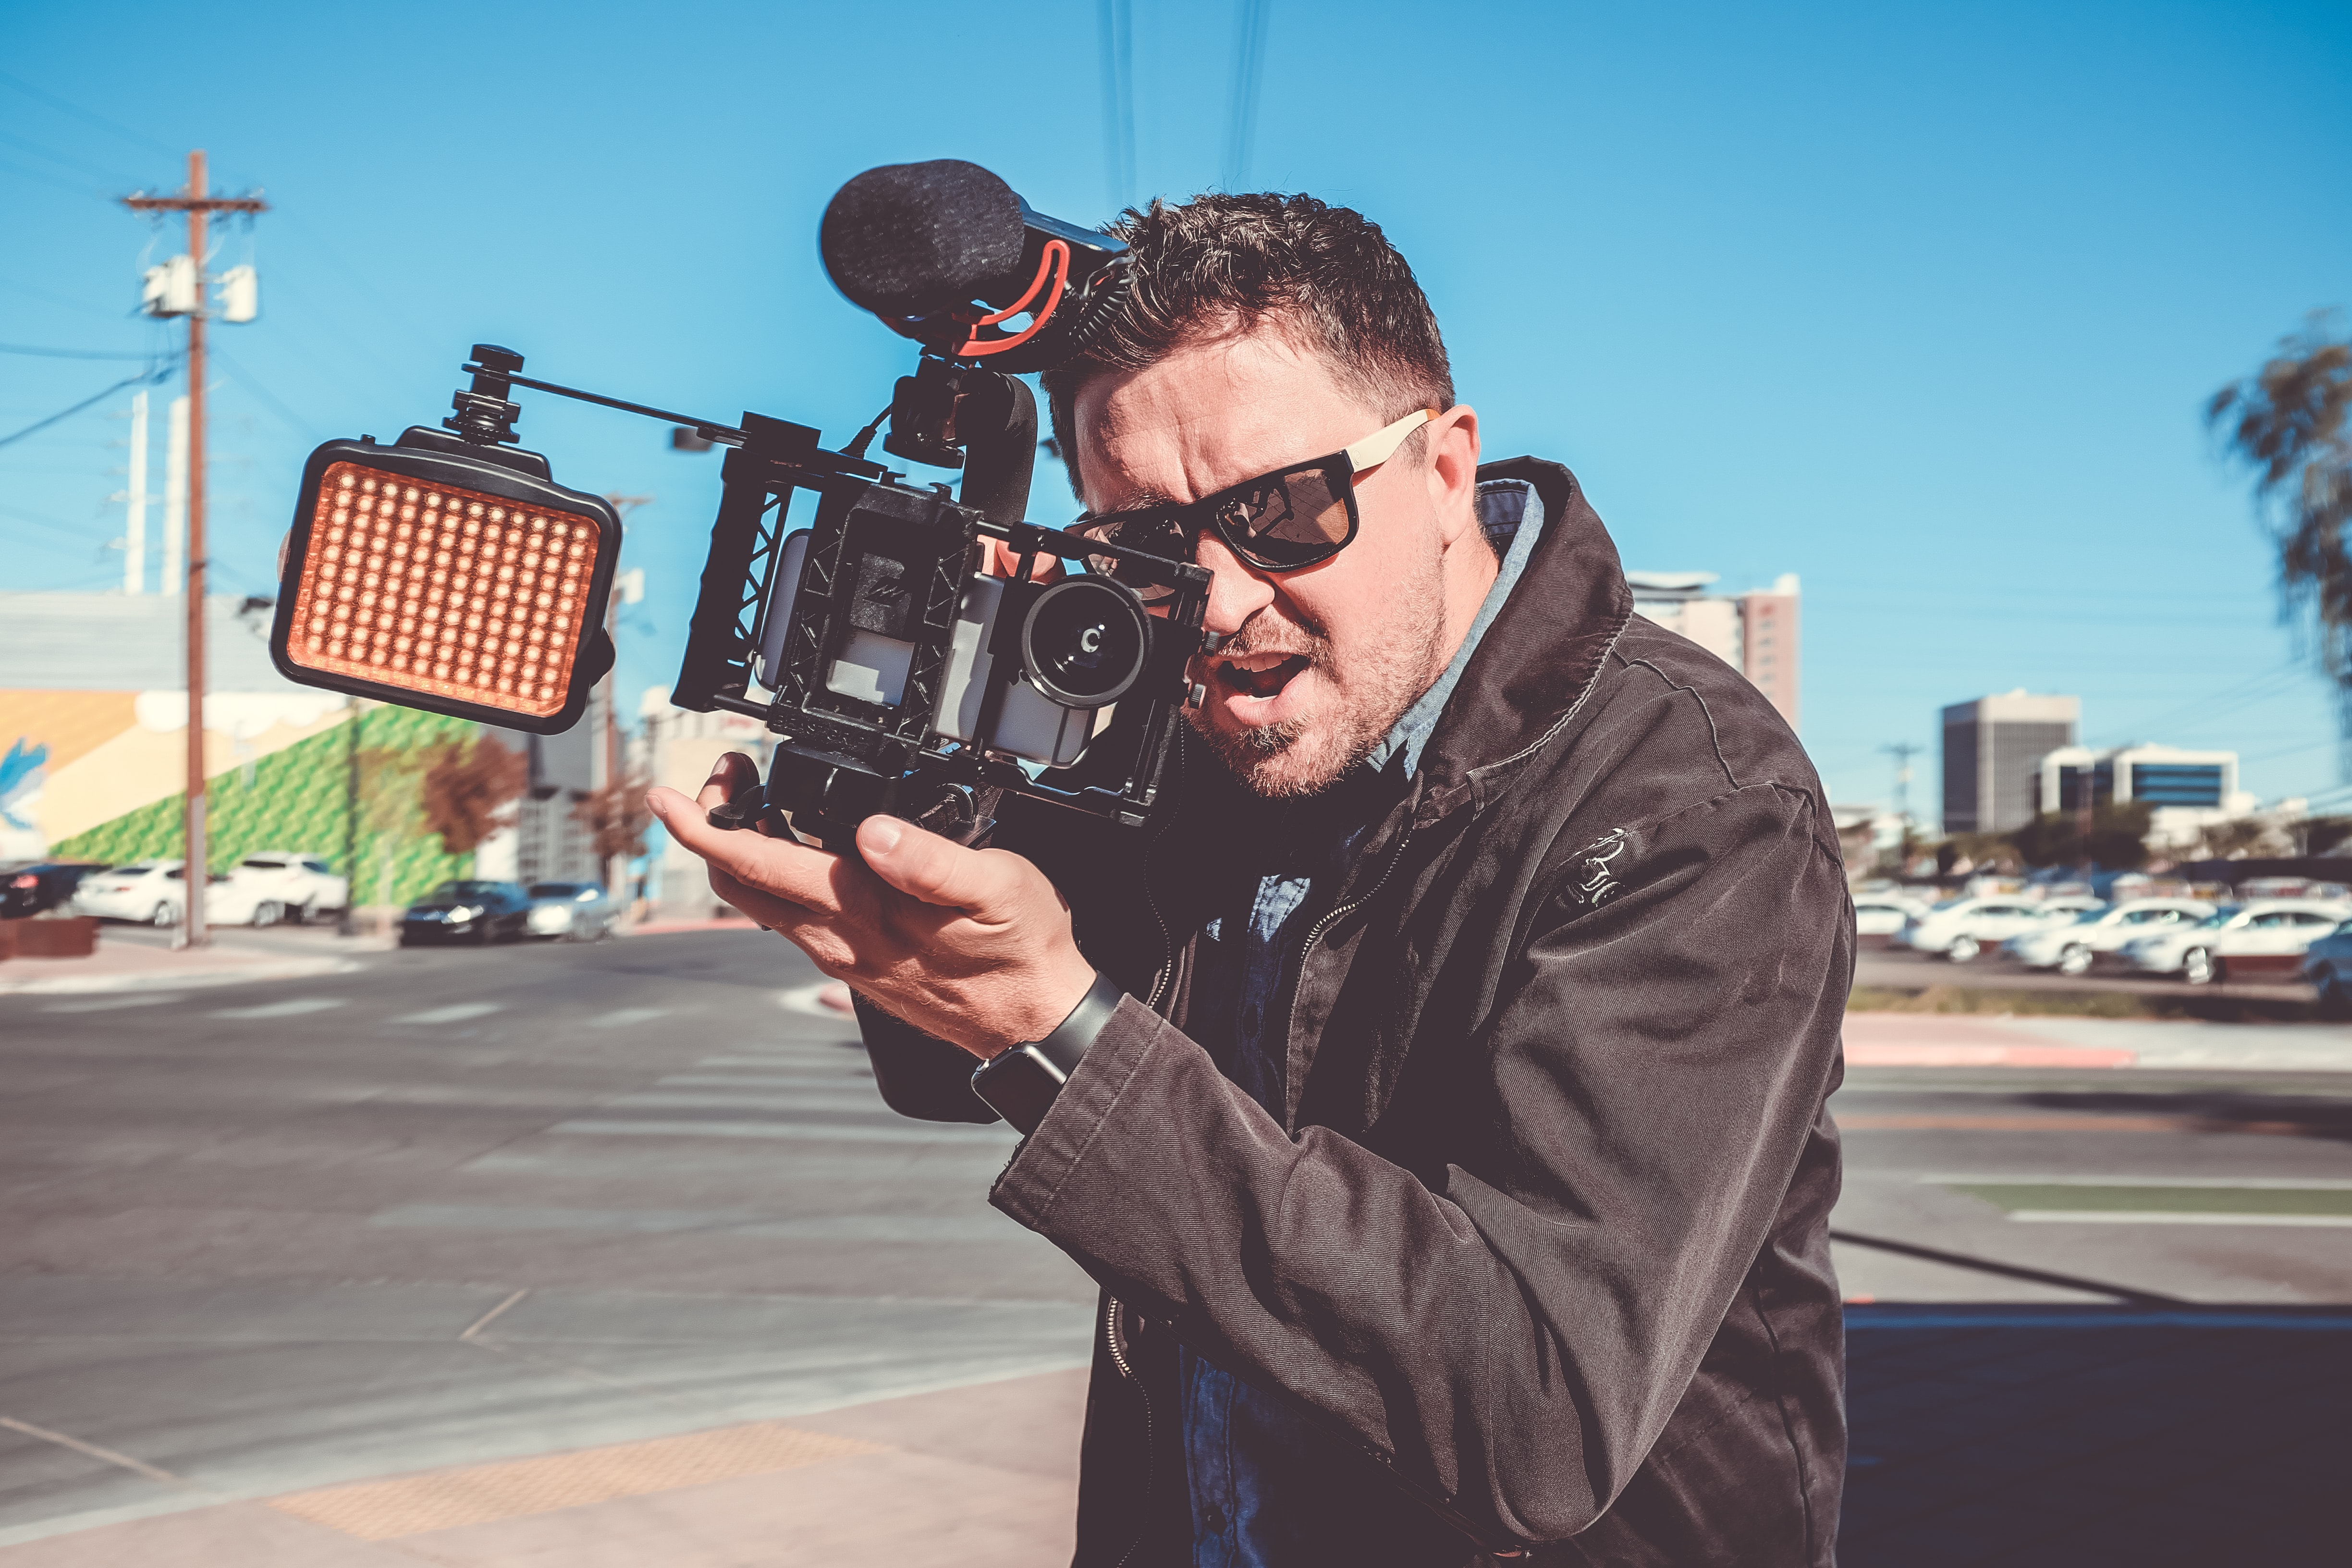 A man in sunglasses holding a professional camera with an excited expression on his face